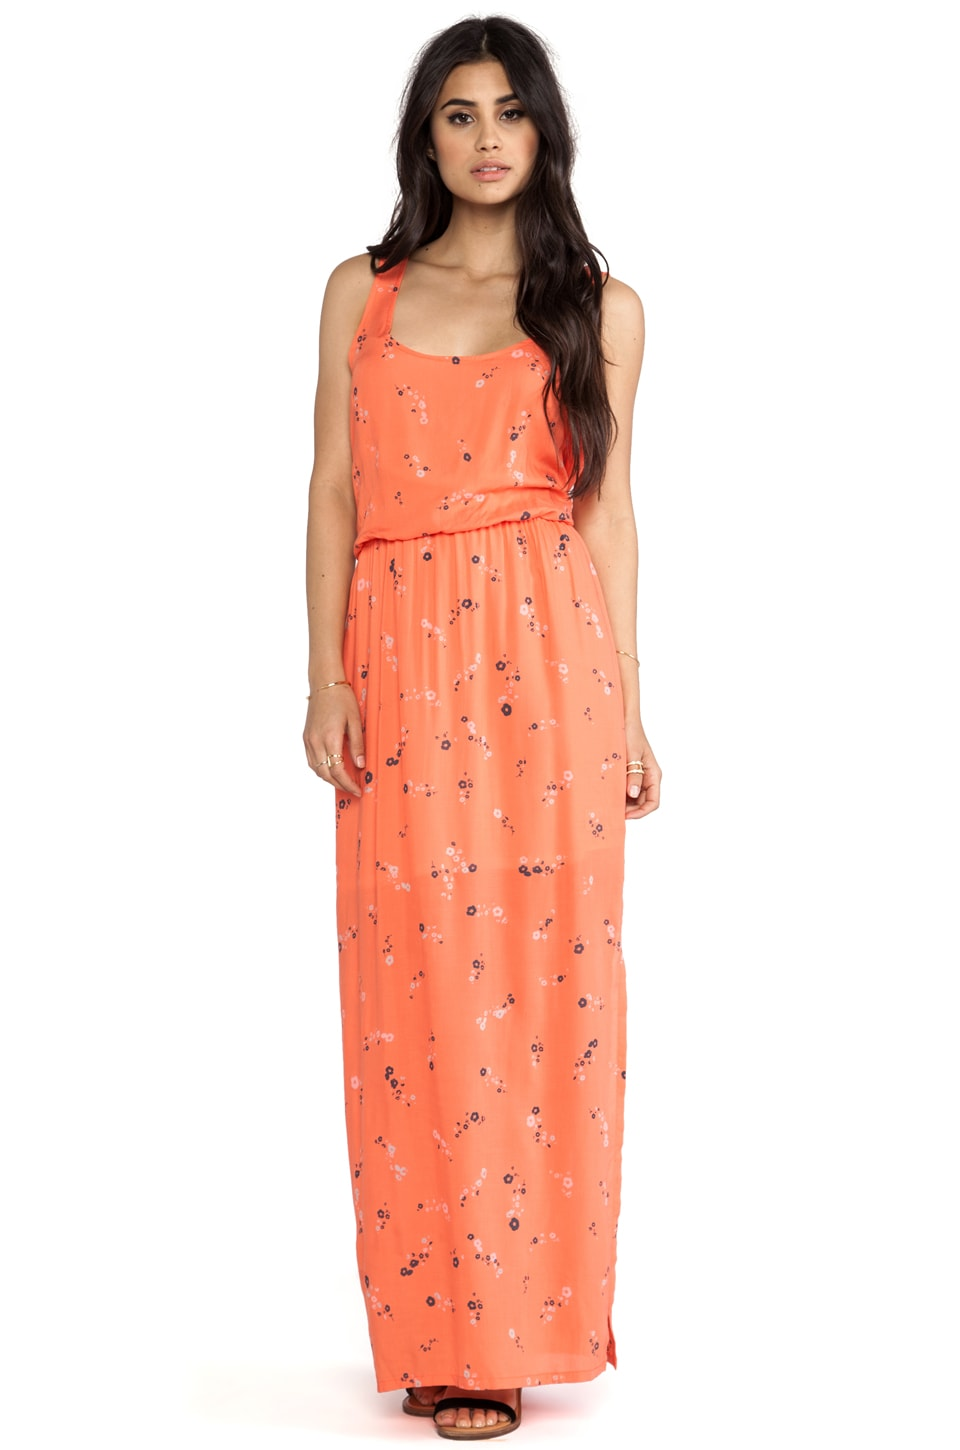 Splendid California Poppies Maxi Dress in Coral